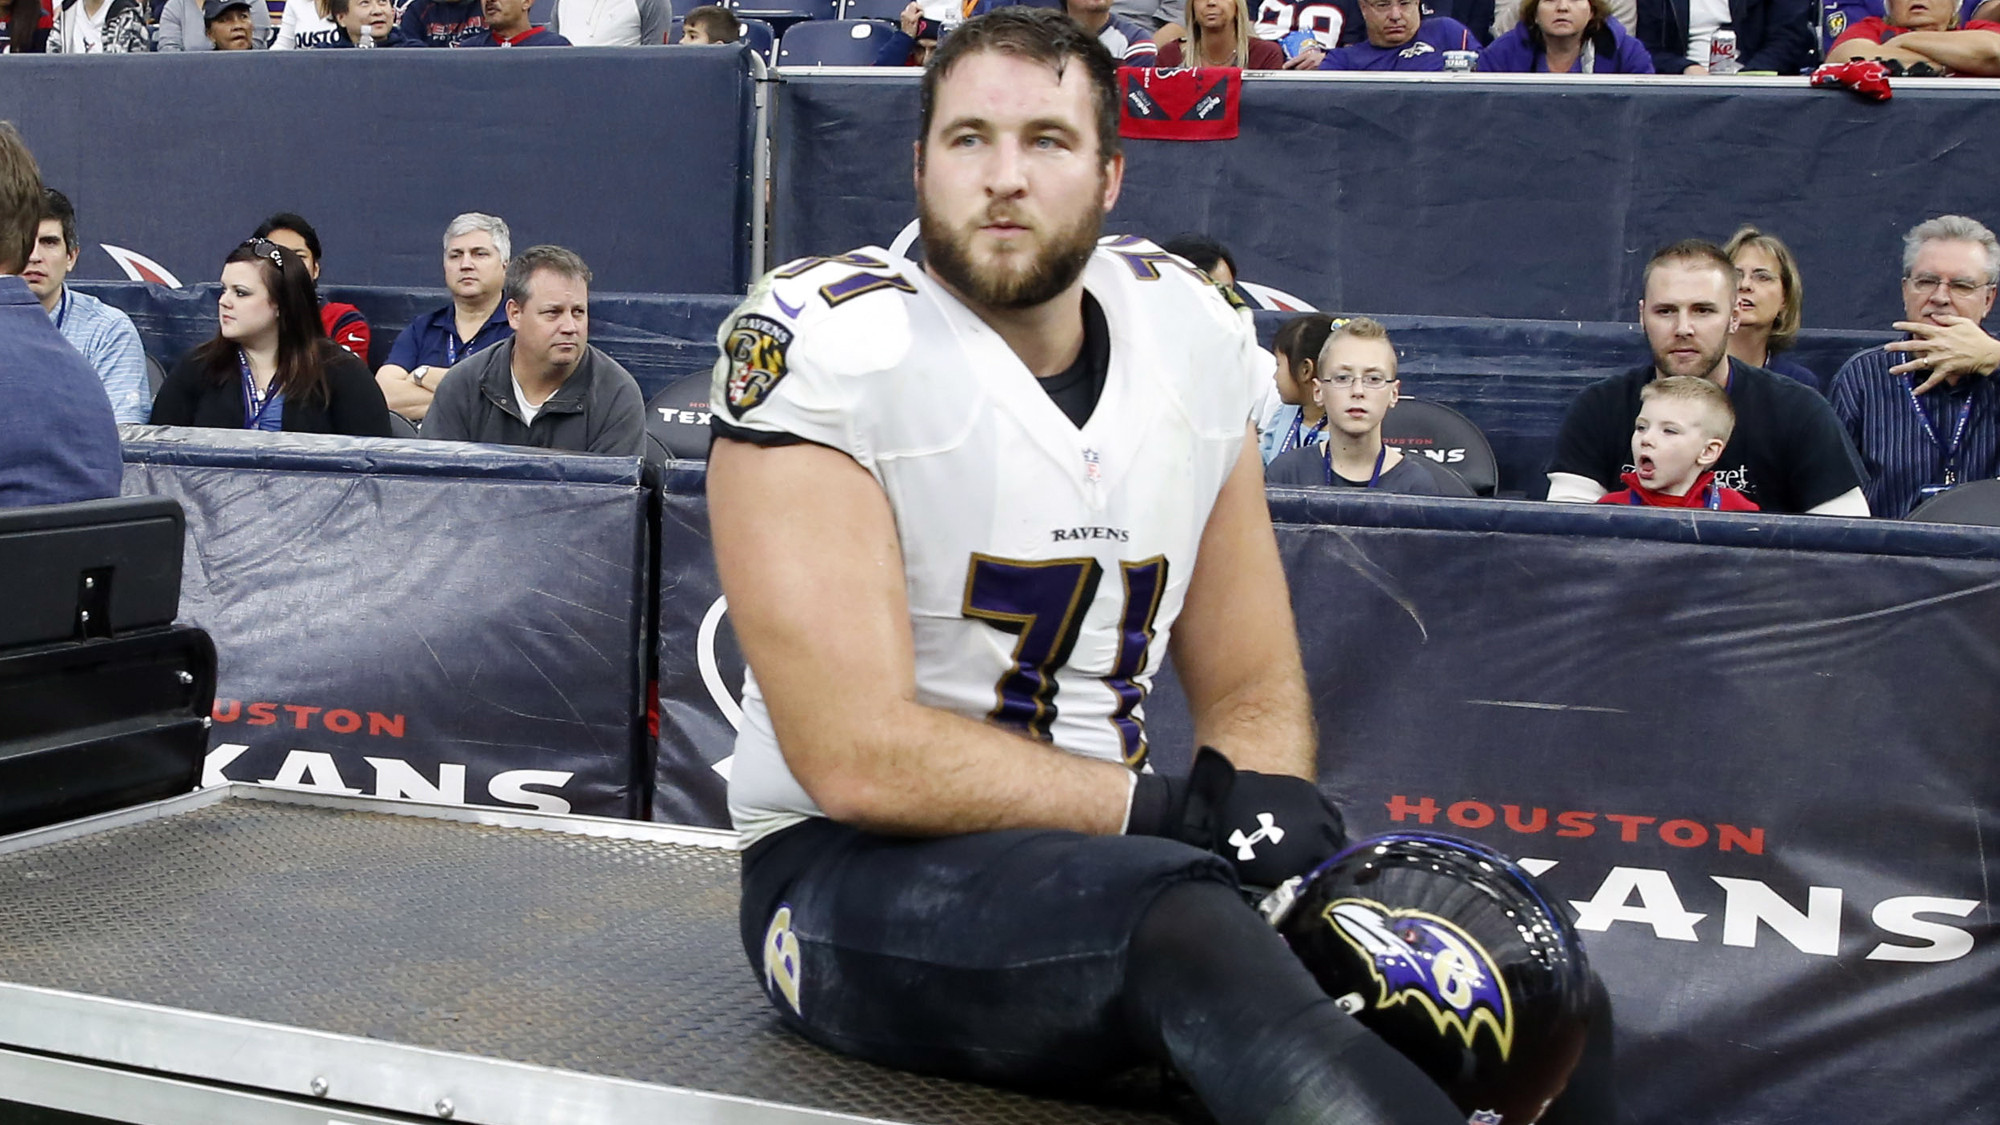 Ravens place offensive tackle Rick Wagner on injured reserve